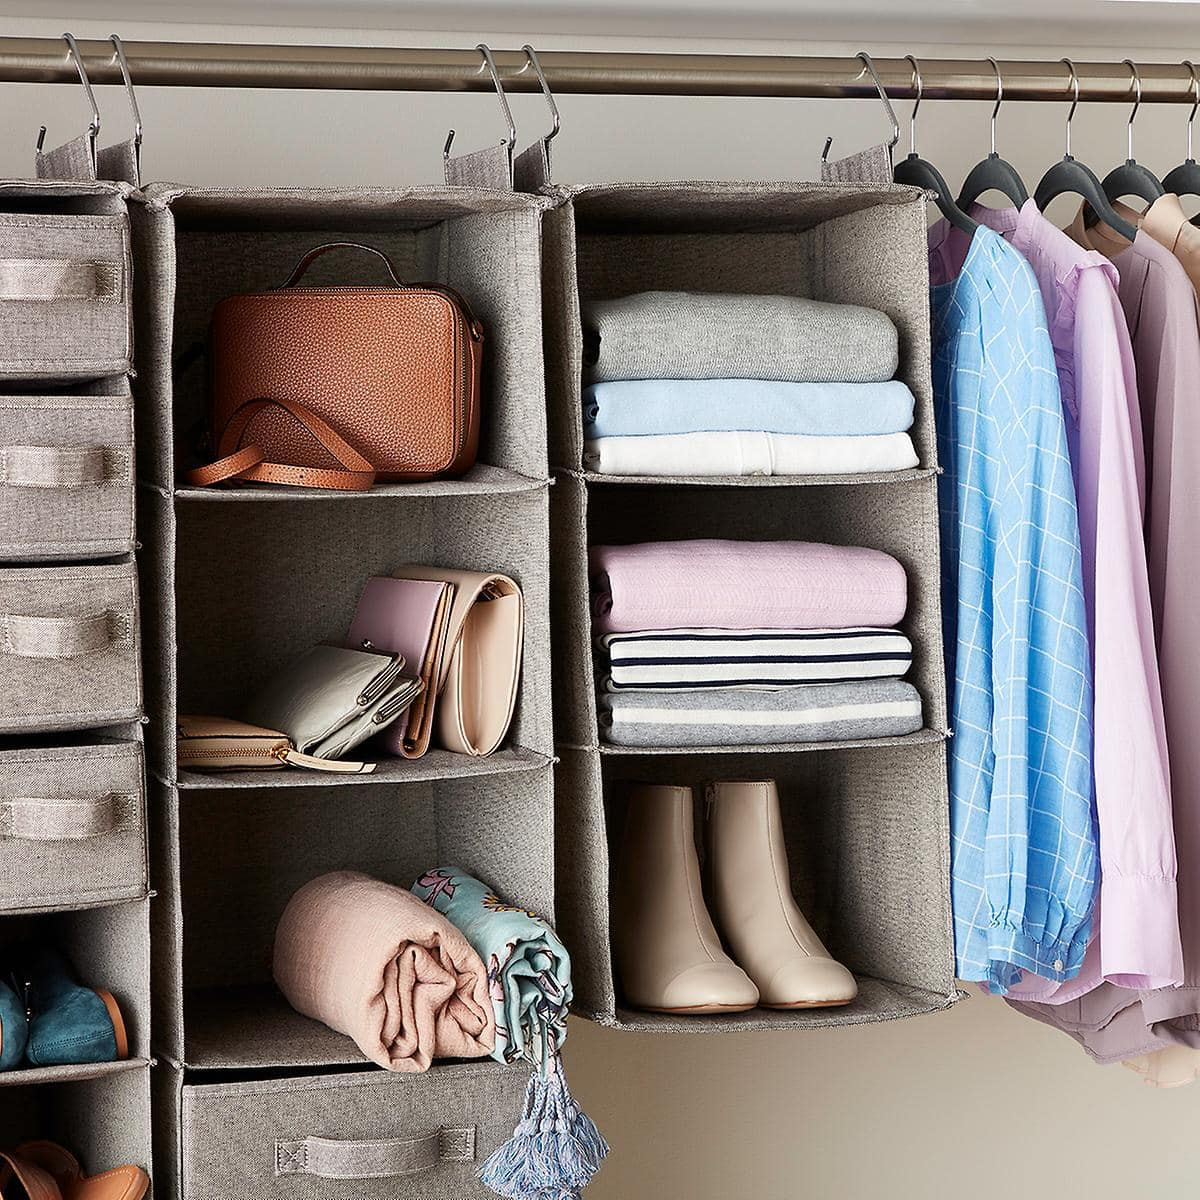 Use a Hanging Rack in Your Closet